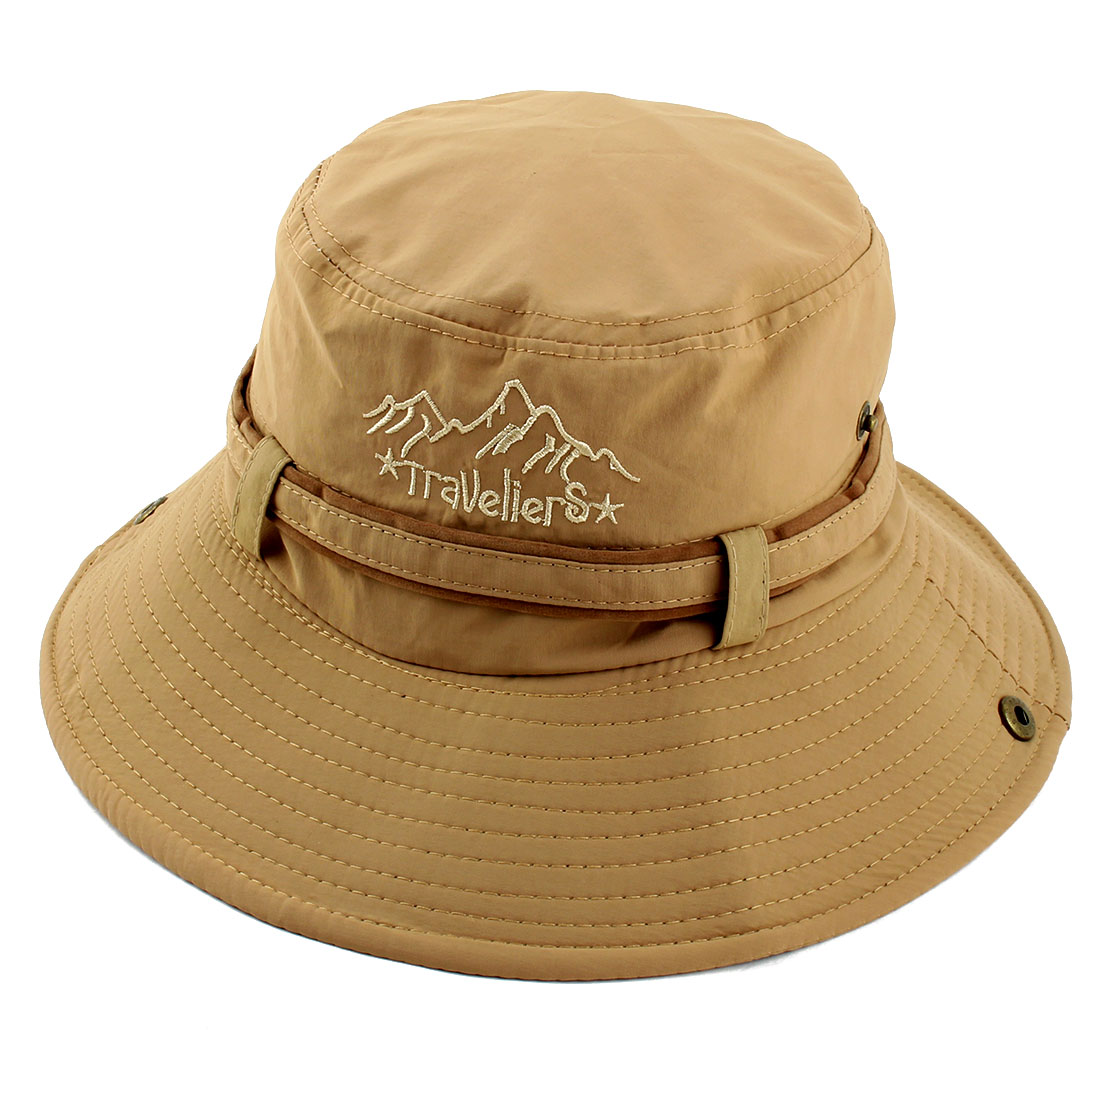 Fisherman Cotton Blends Outdoor Sports Climbing Hunting Adjustable Strap Wide Brim Bucket Summer Cap Fishing Hat Khaki